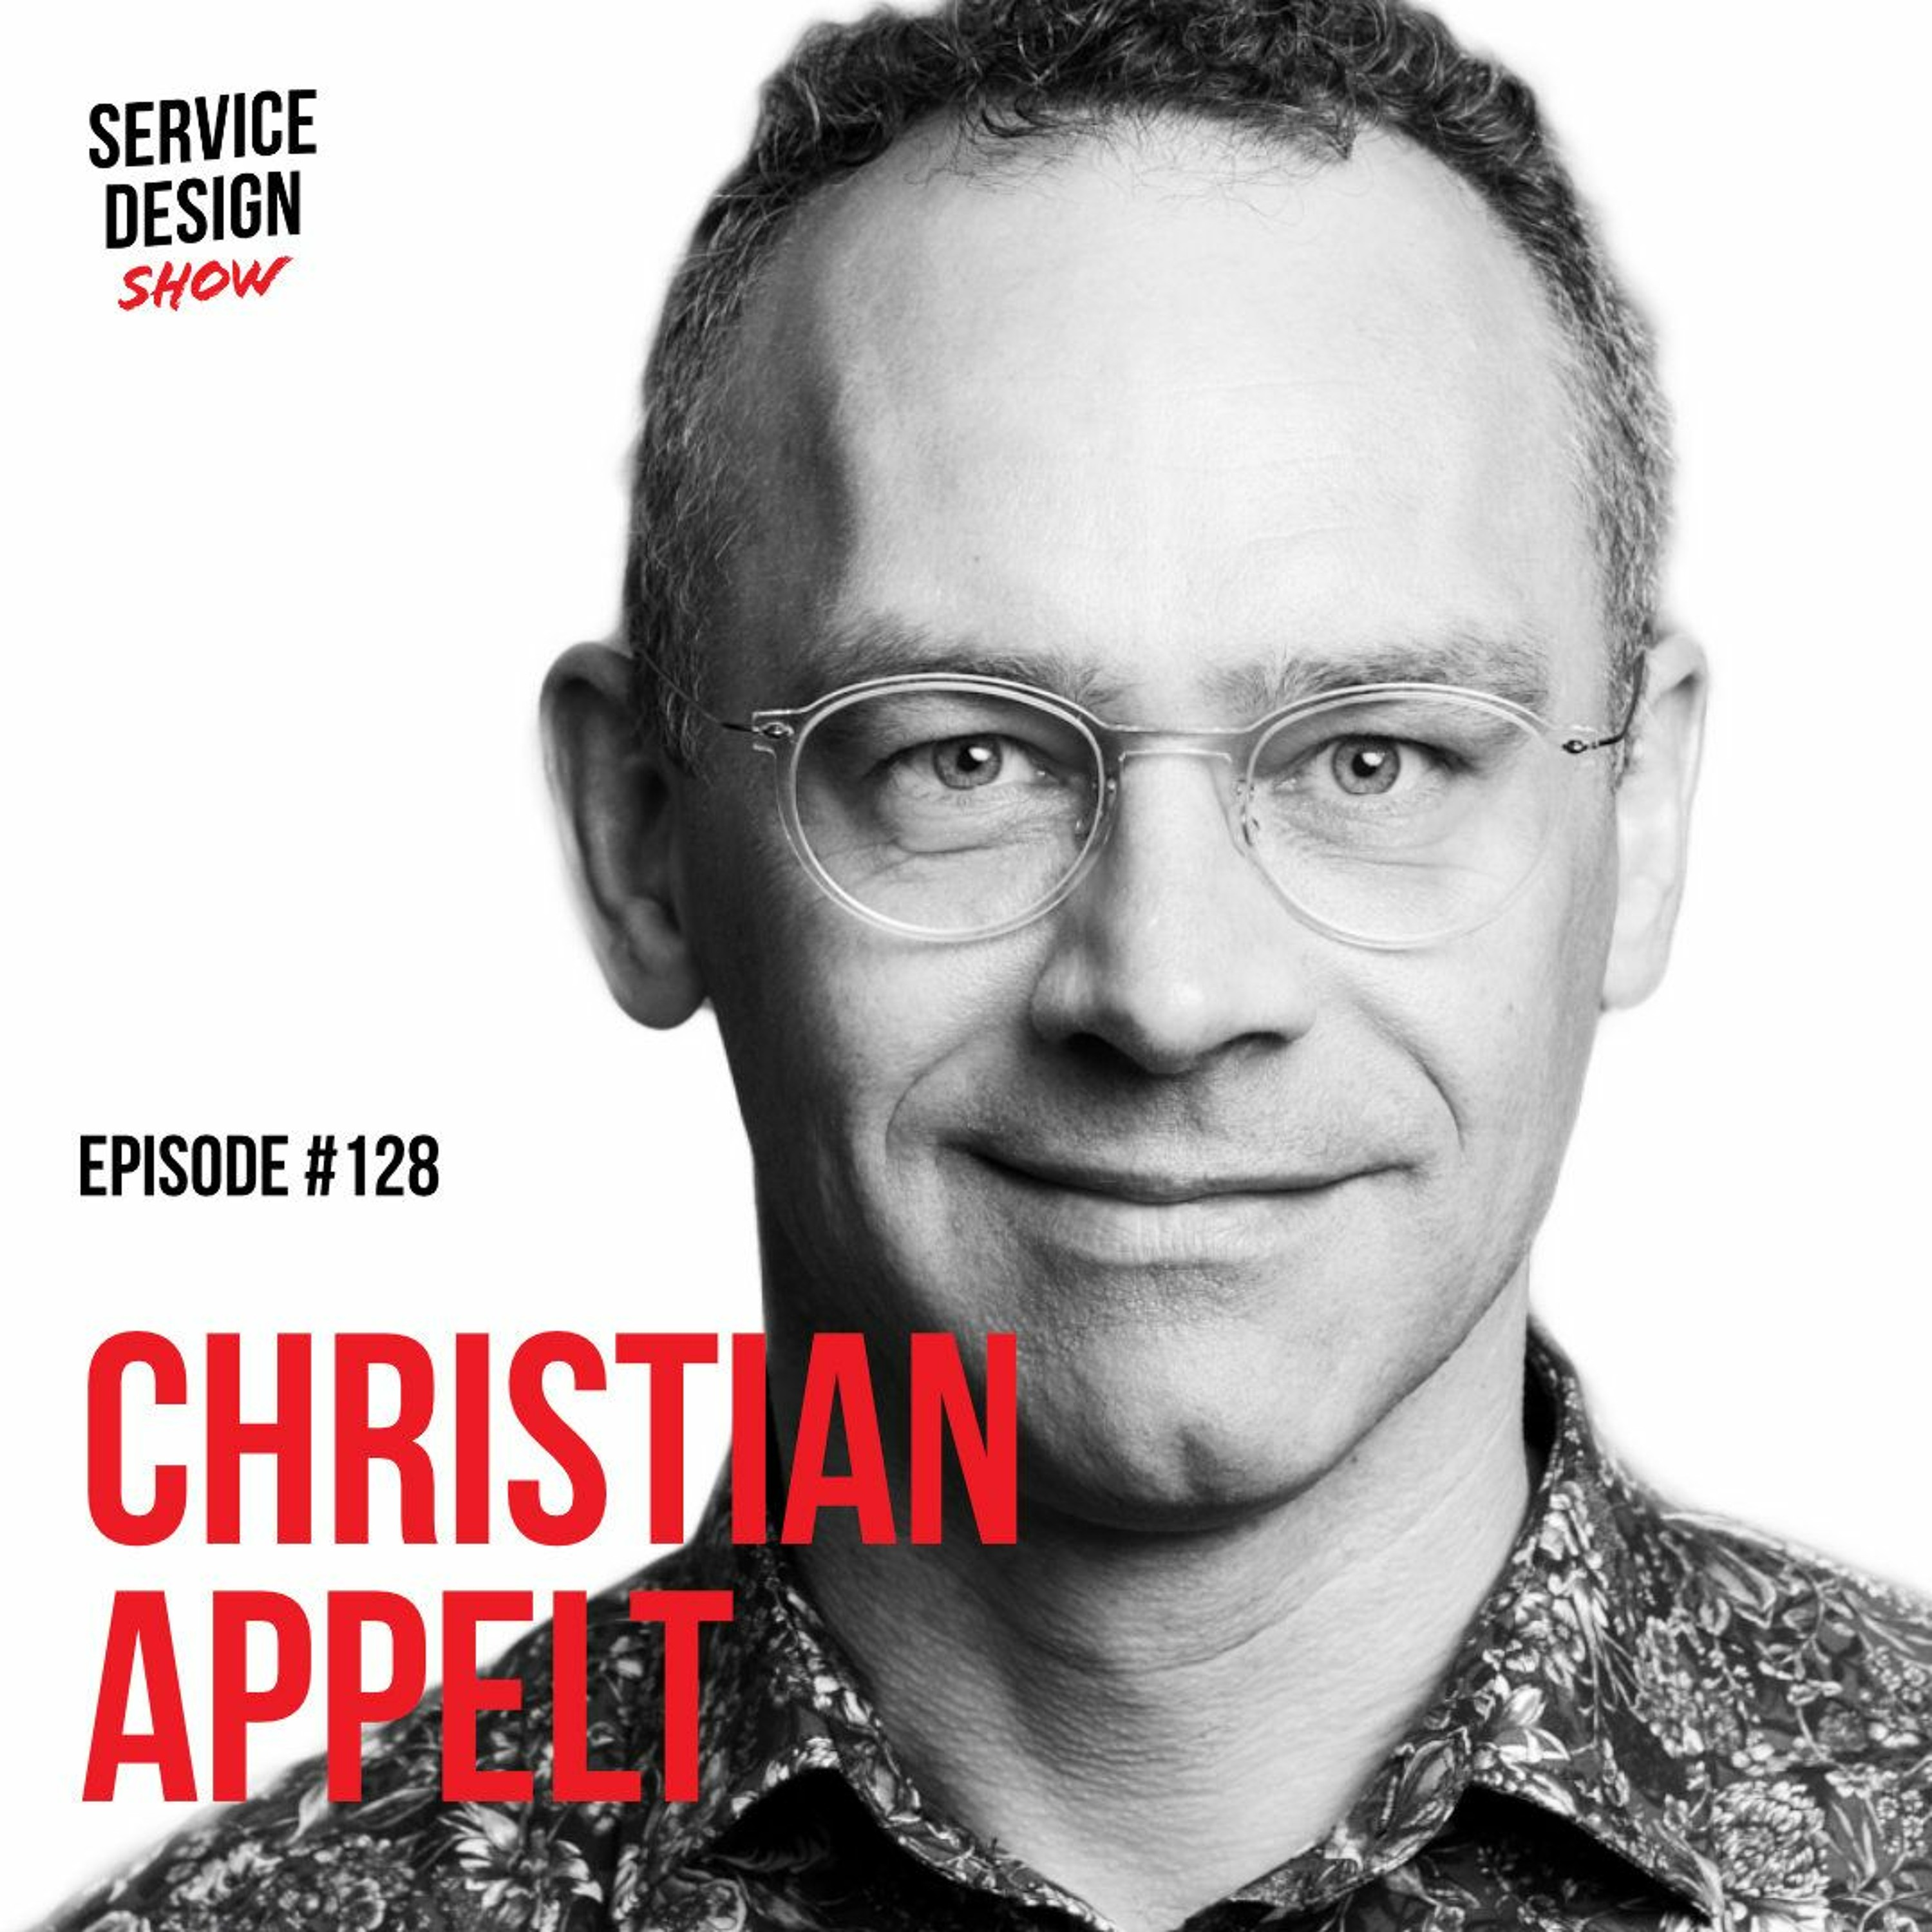 Shaping service design as a strategic business tool? / Christian Appelt / Episode #128